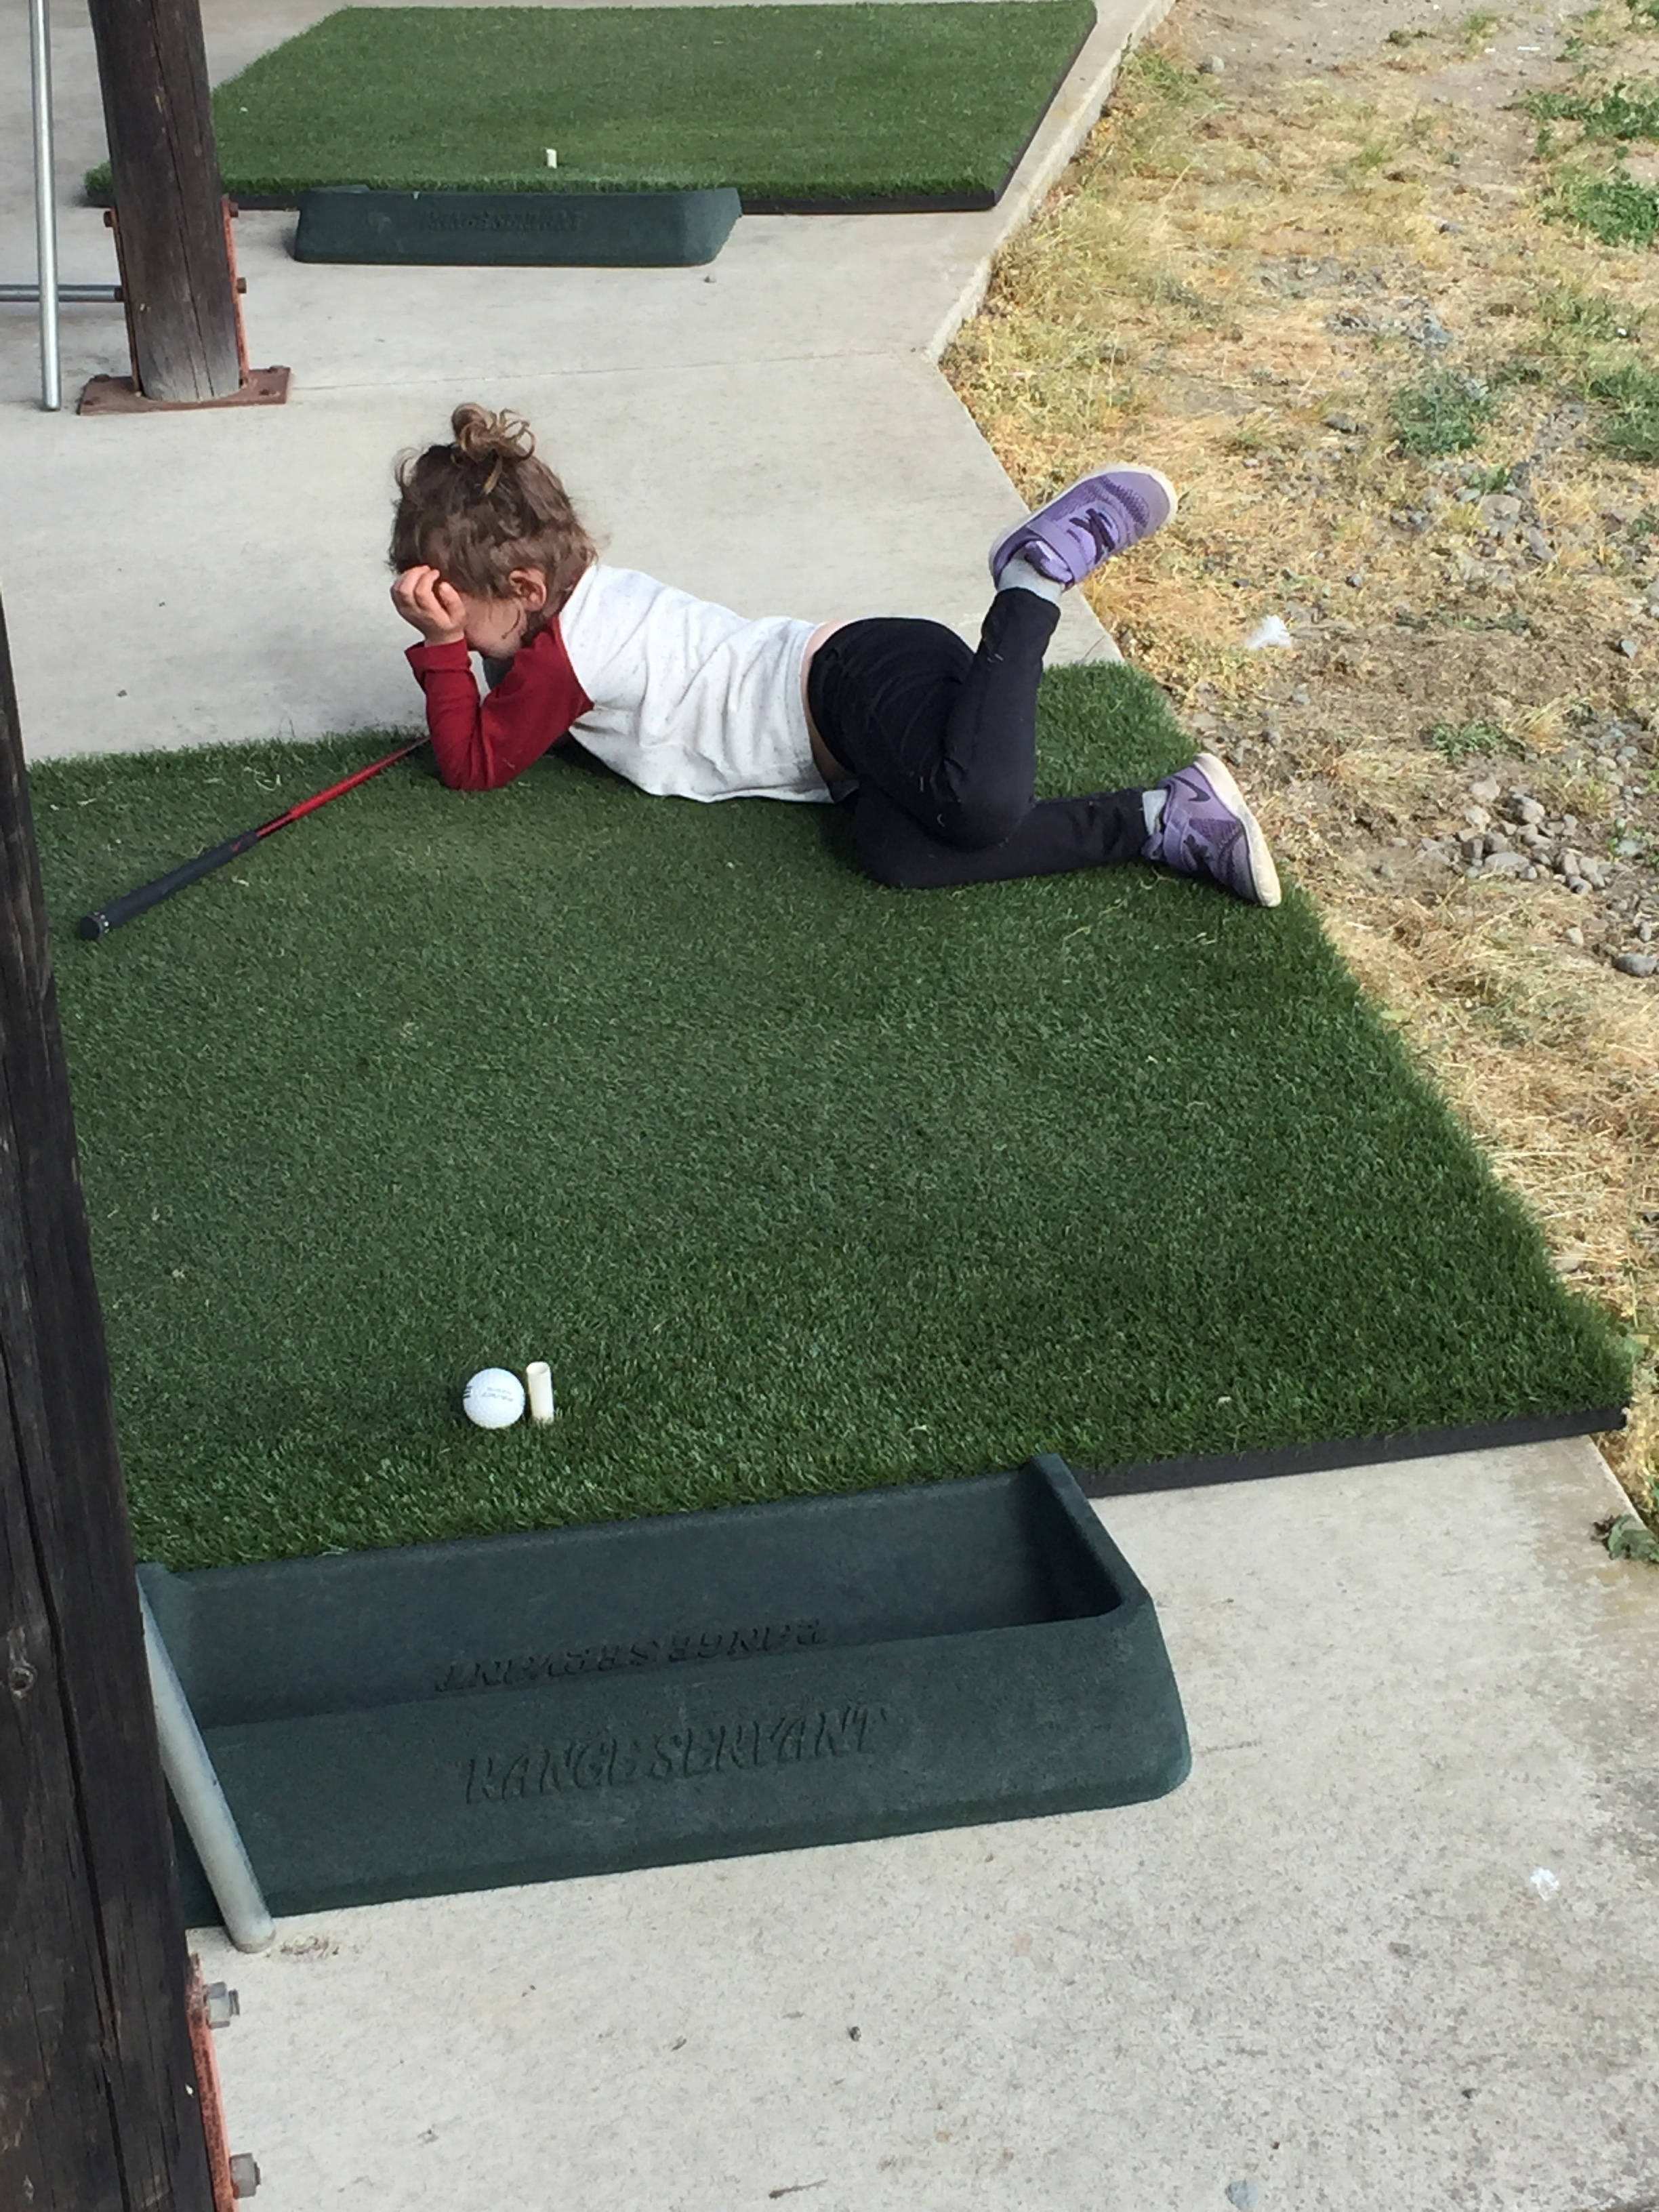 Author Kristie Syke's daughter just not into golf that day.